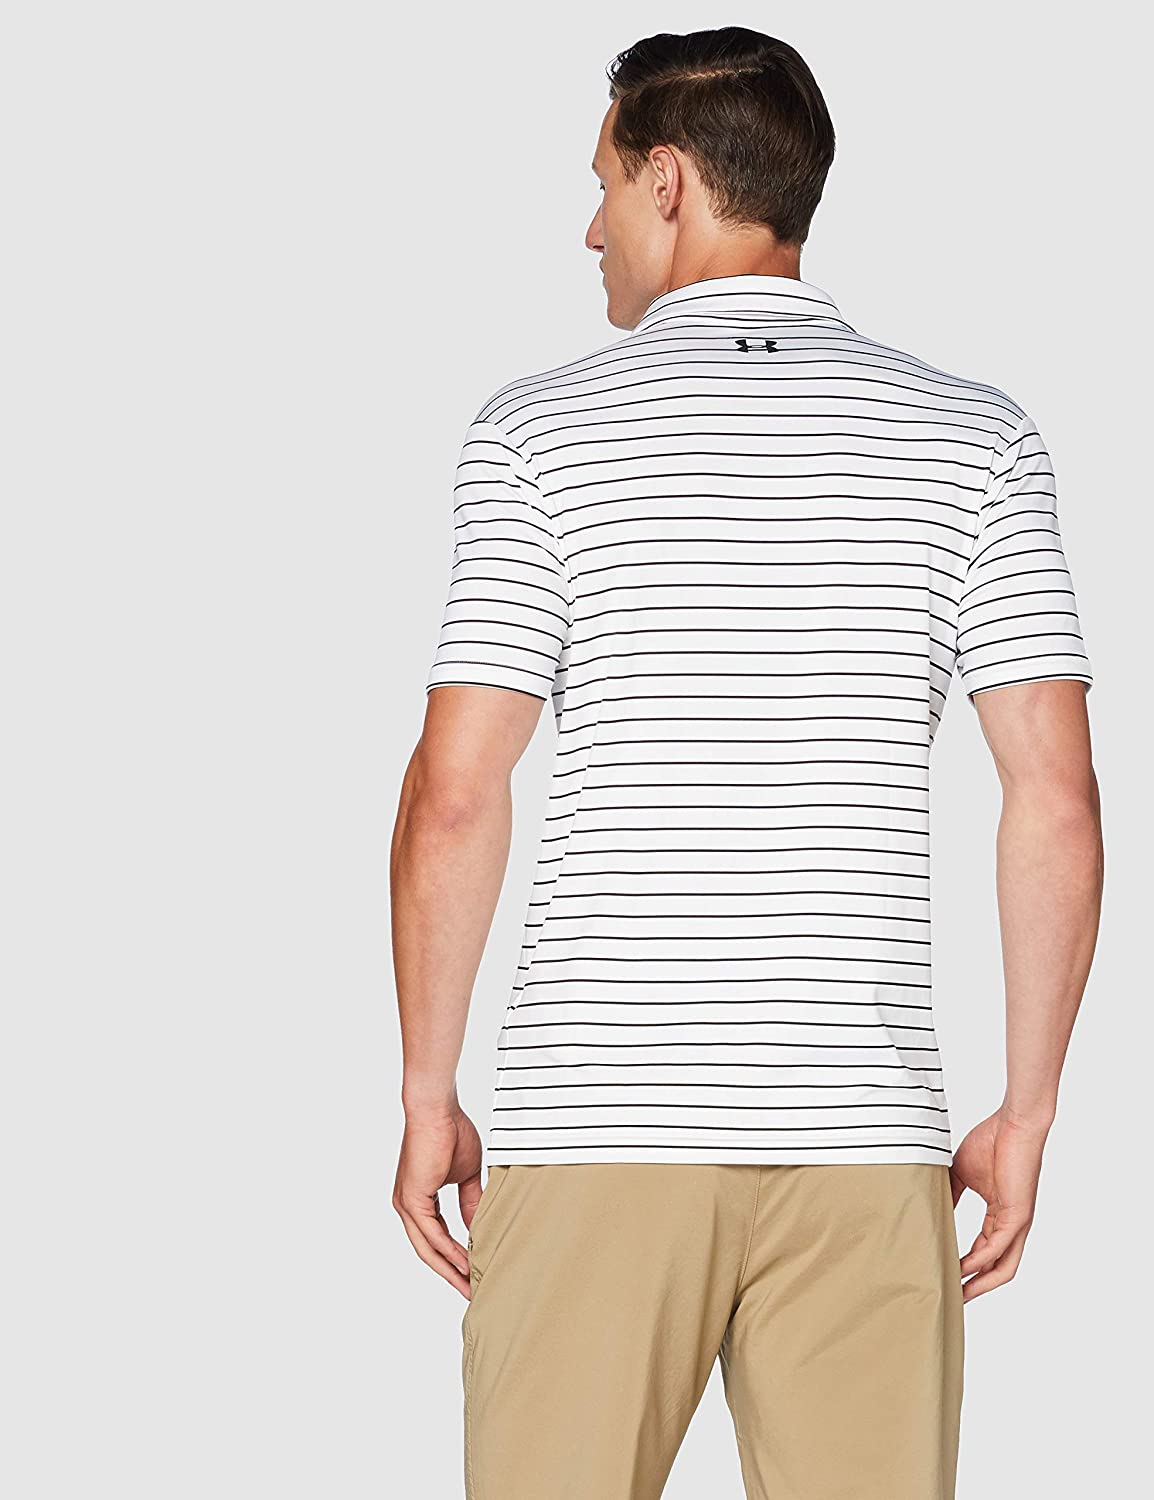 White//Black//Black Short Sleeve Polo Shirt with Sun Protection Men 100 Under Armour Playoff 2.0 white Polo T Shirt with Short Sleeves SM